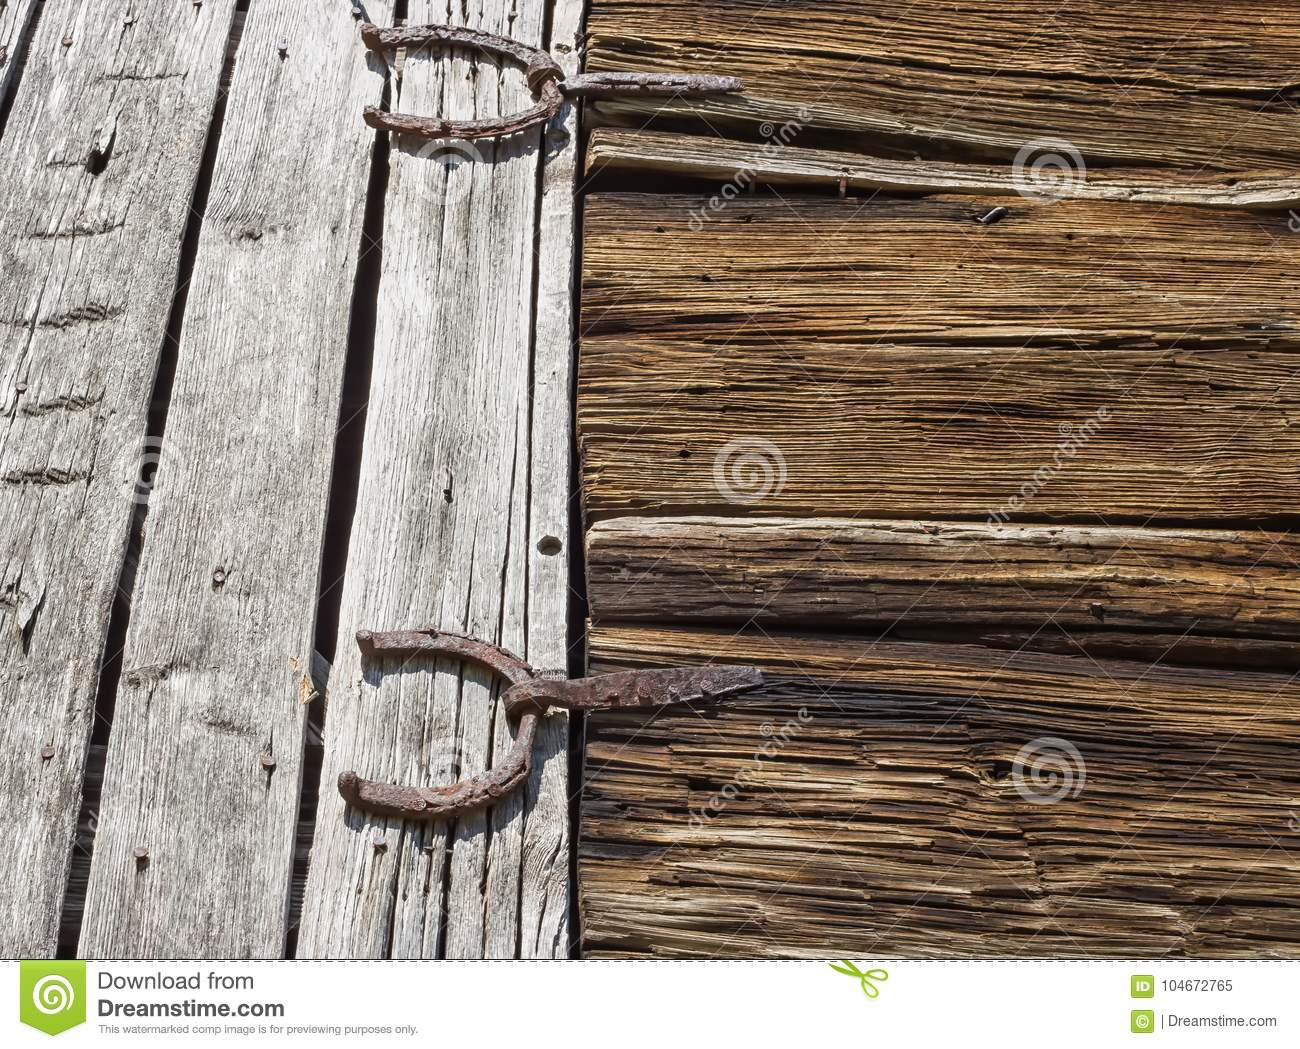 Antique horseshoes as barn door hinges - Antique Horseshoes As Barn Door Hinges Stock Image - Image Of Detail